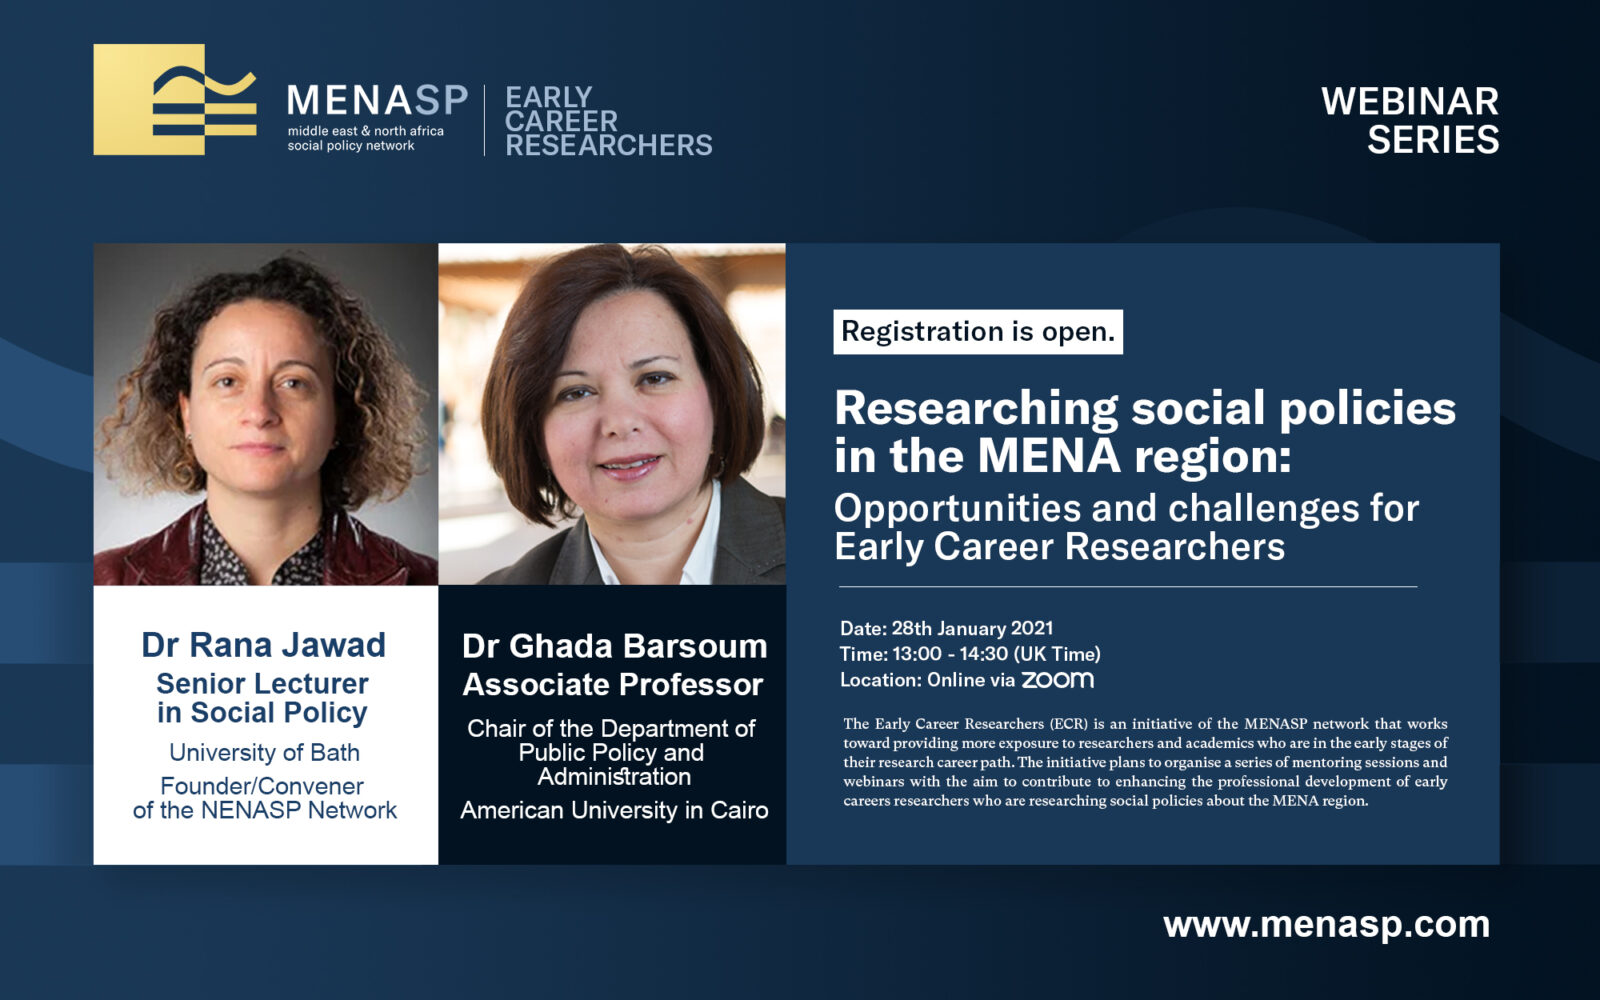 ECR Webinar: Researching social policies in the MENA region: Opportunities and challenges for Early Career Researchers